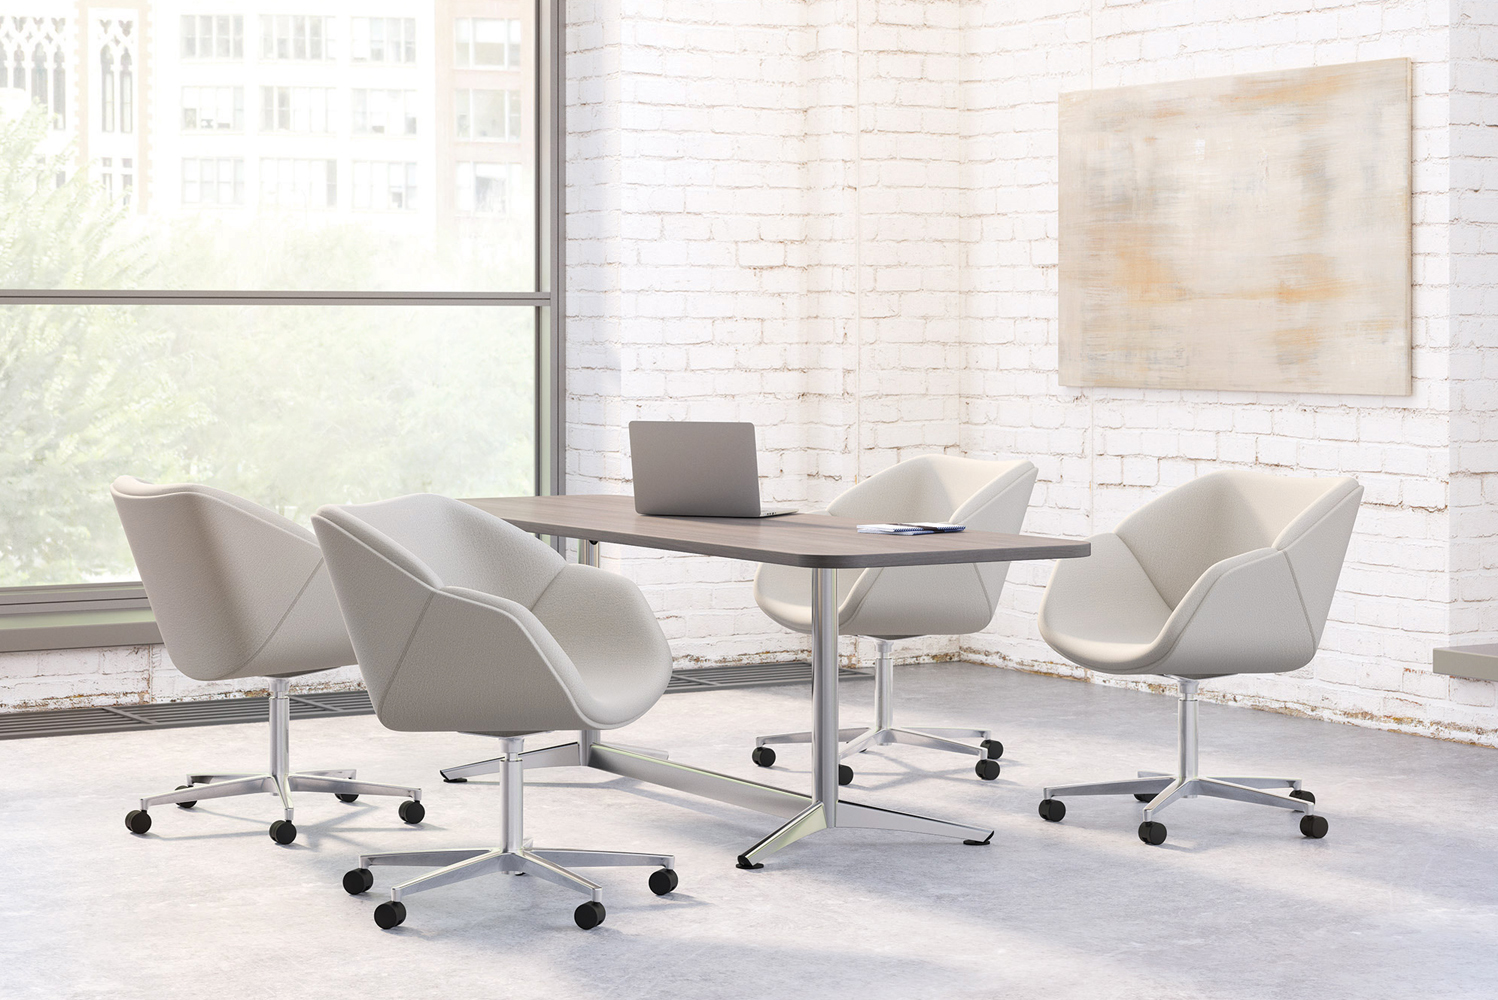 National Office Furniture launched Delgado.